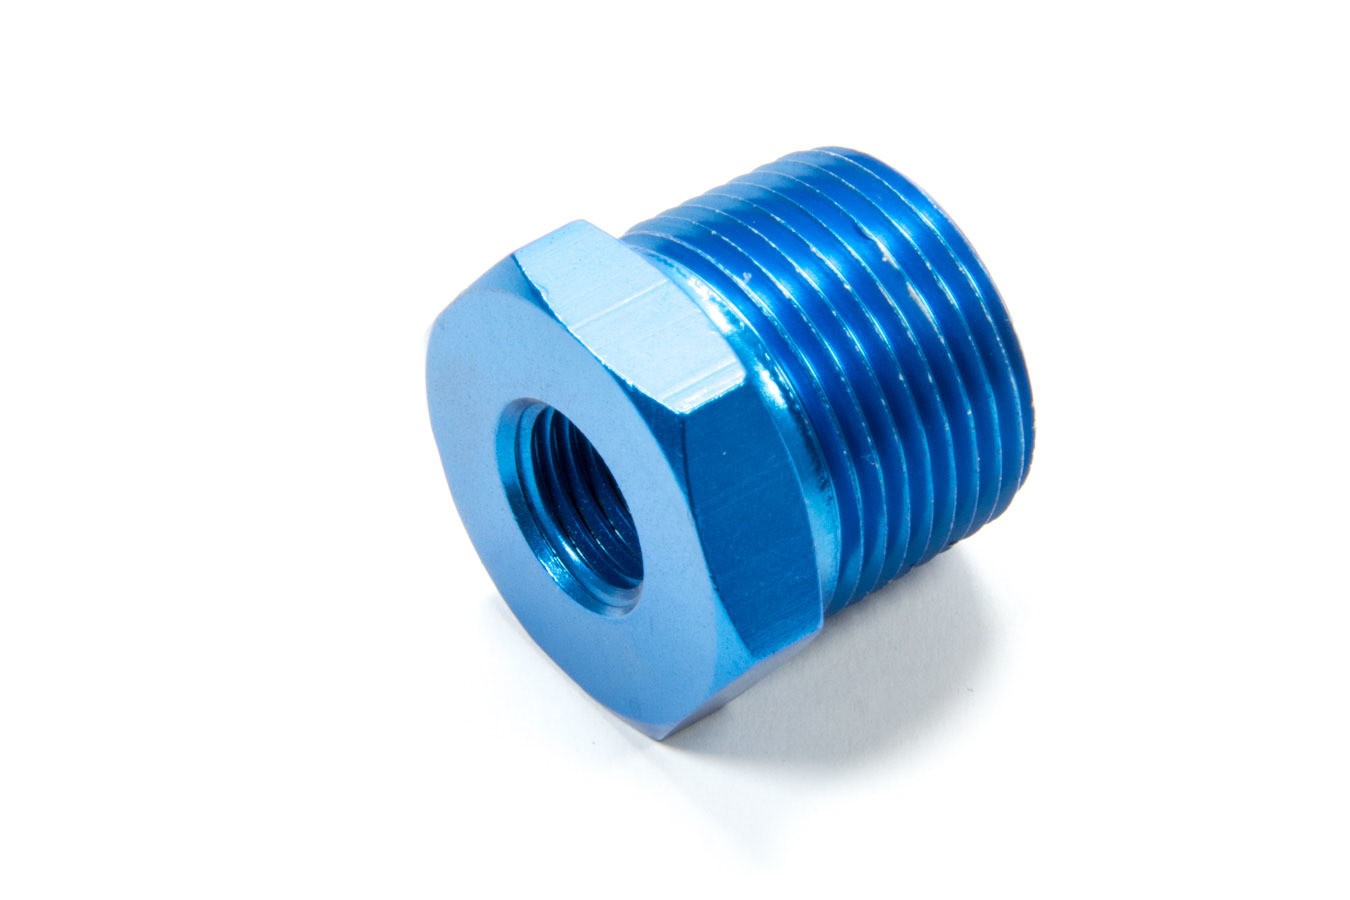 Fragola 491209 Fitting, Bushing, 3/4 in NPT Male to 1/4 in NPT Female, Aluminum, Blue Anodize, Each